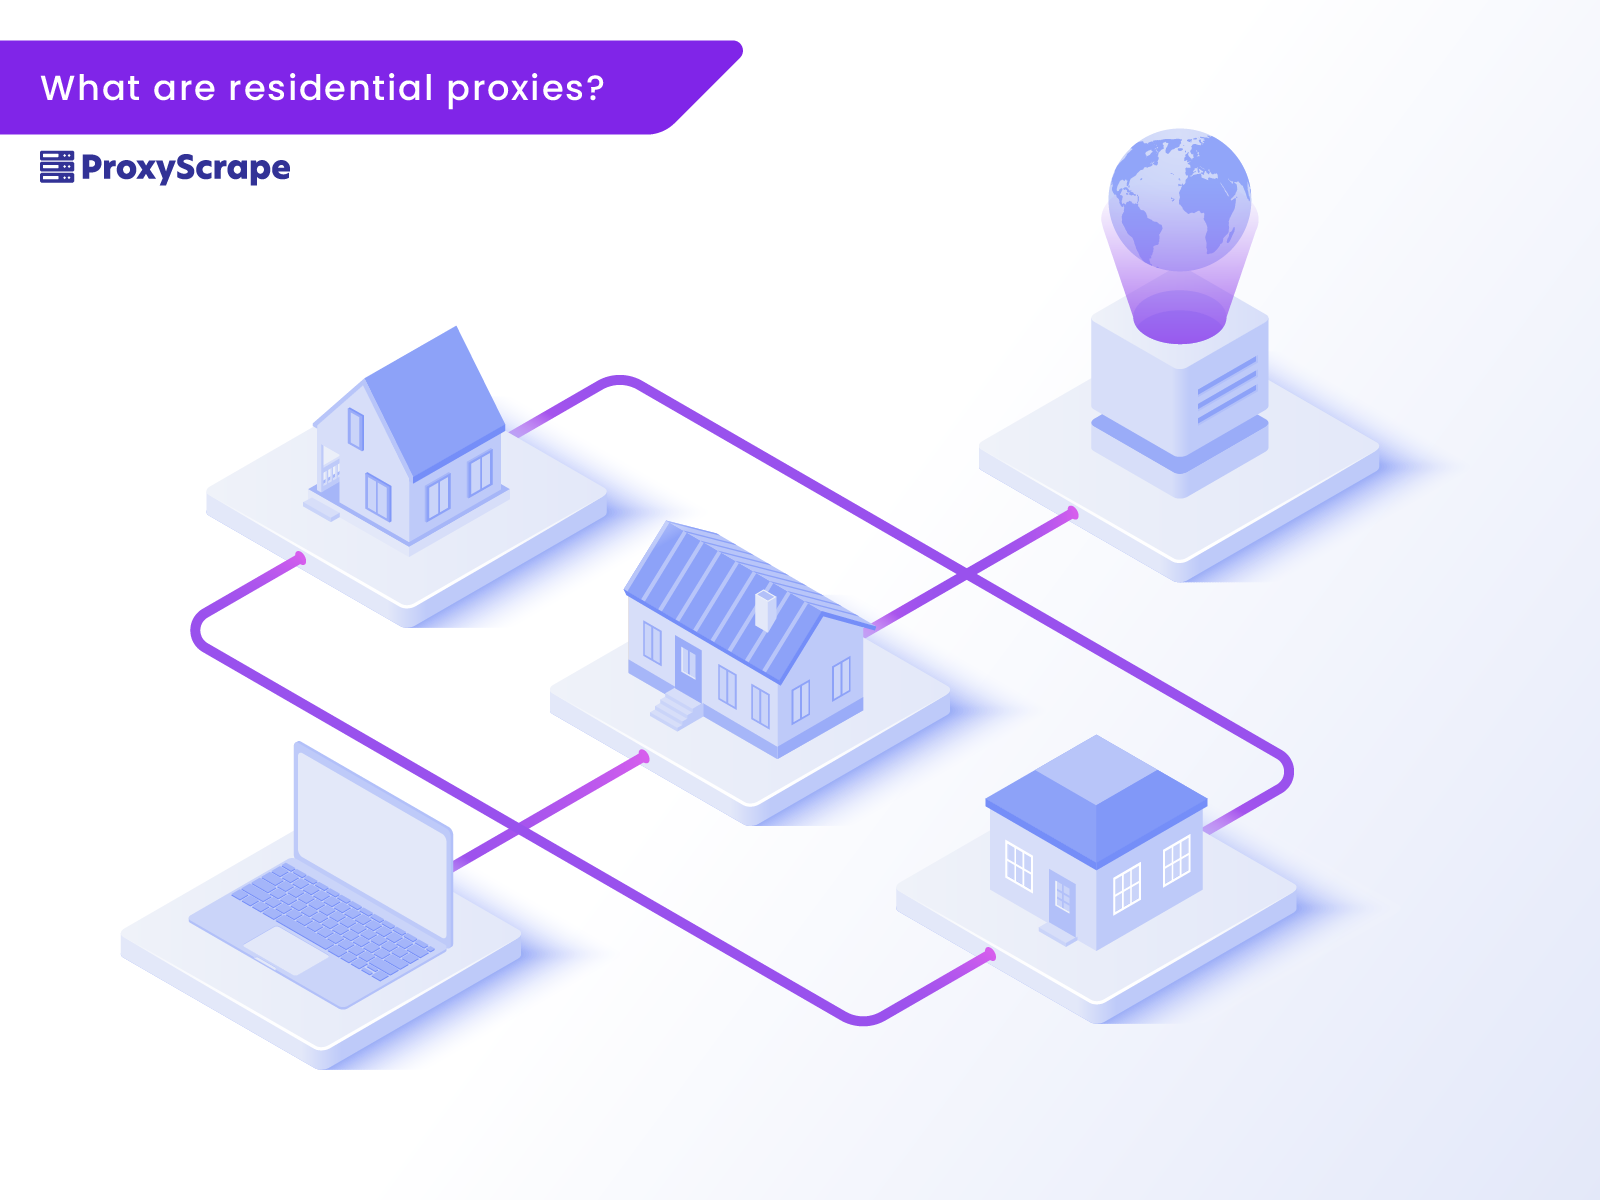 What are residential proxies and why do you need them?